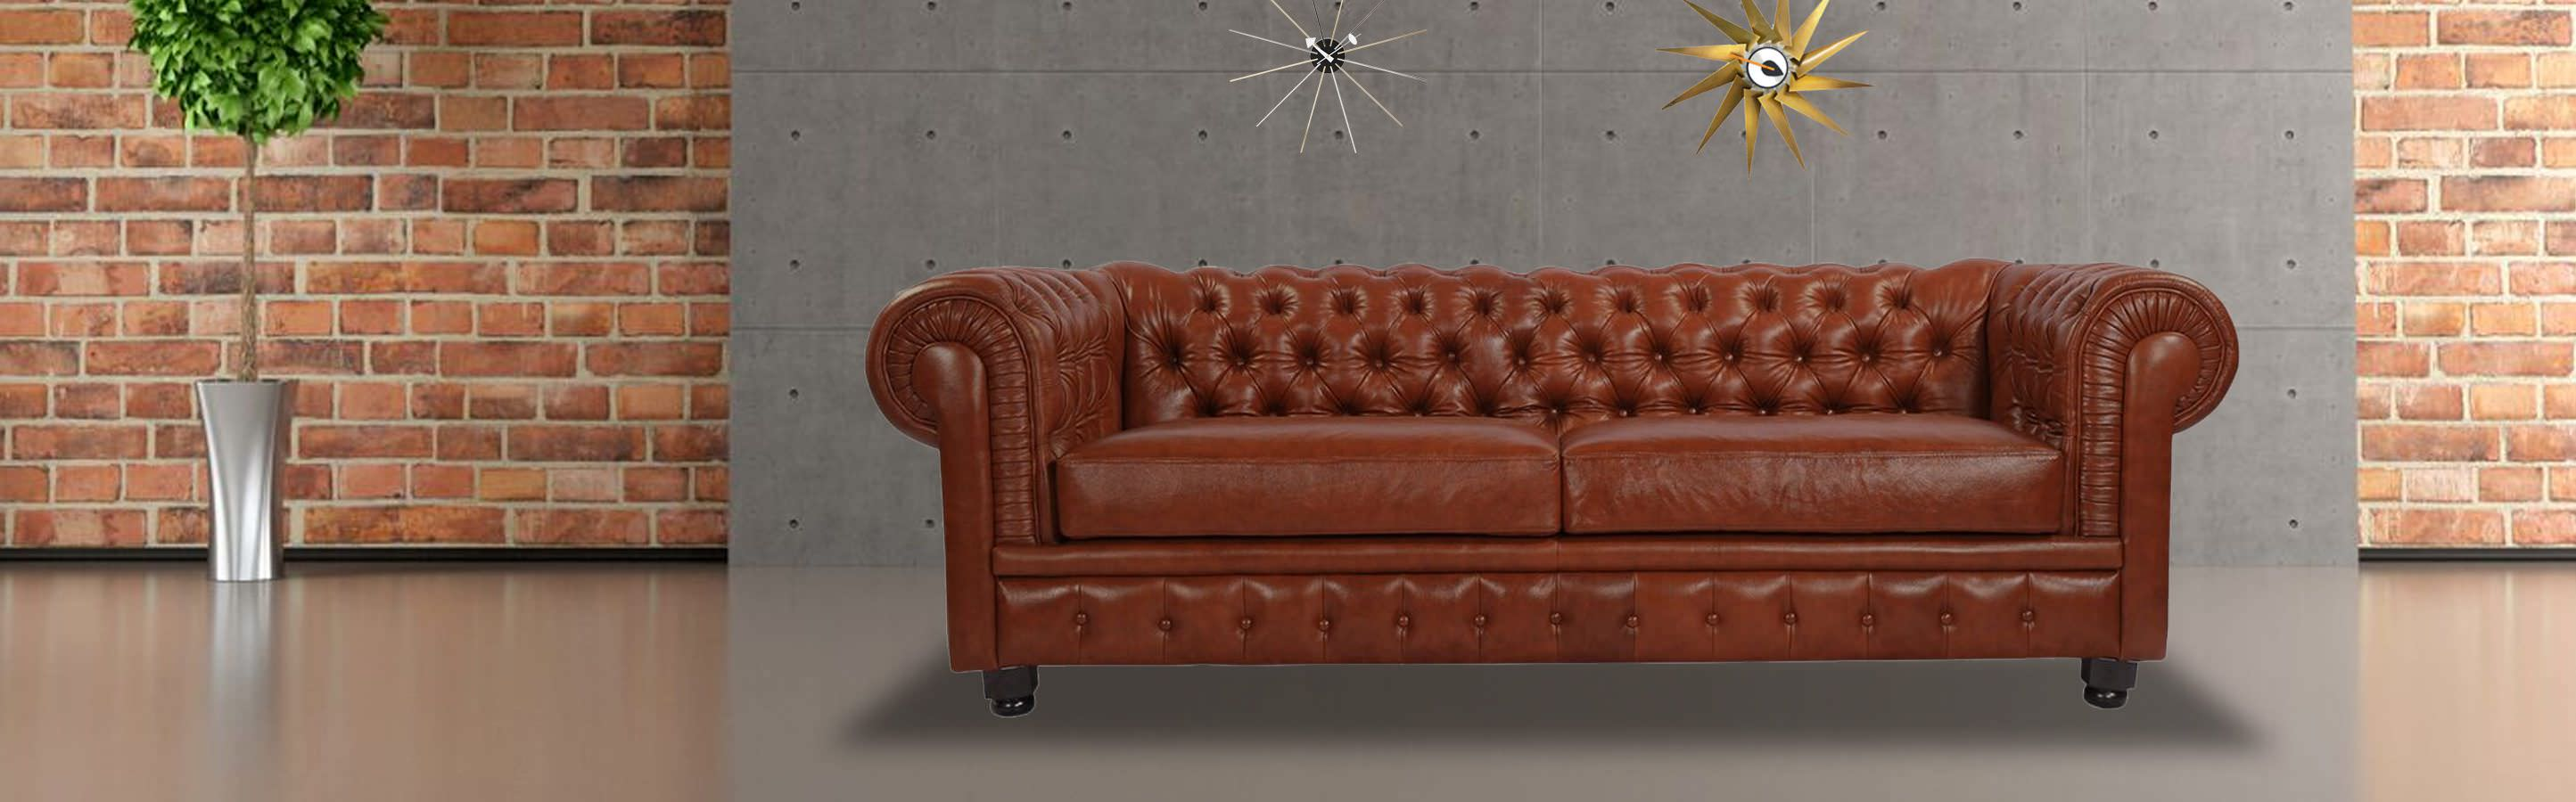 Home Sofa: Contemporary Chesterfield Sofa